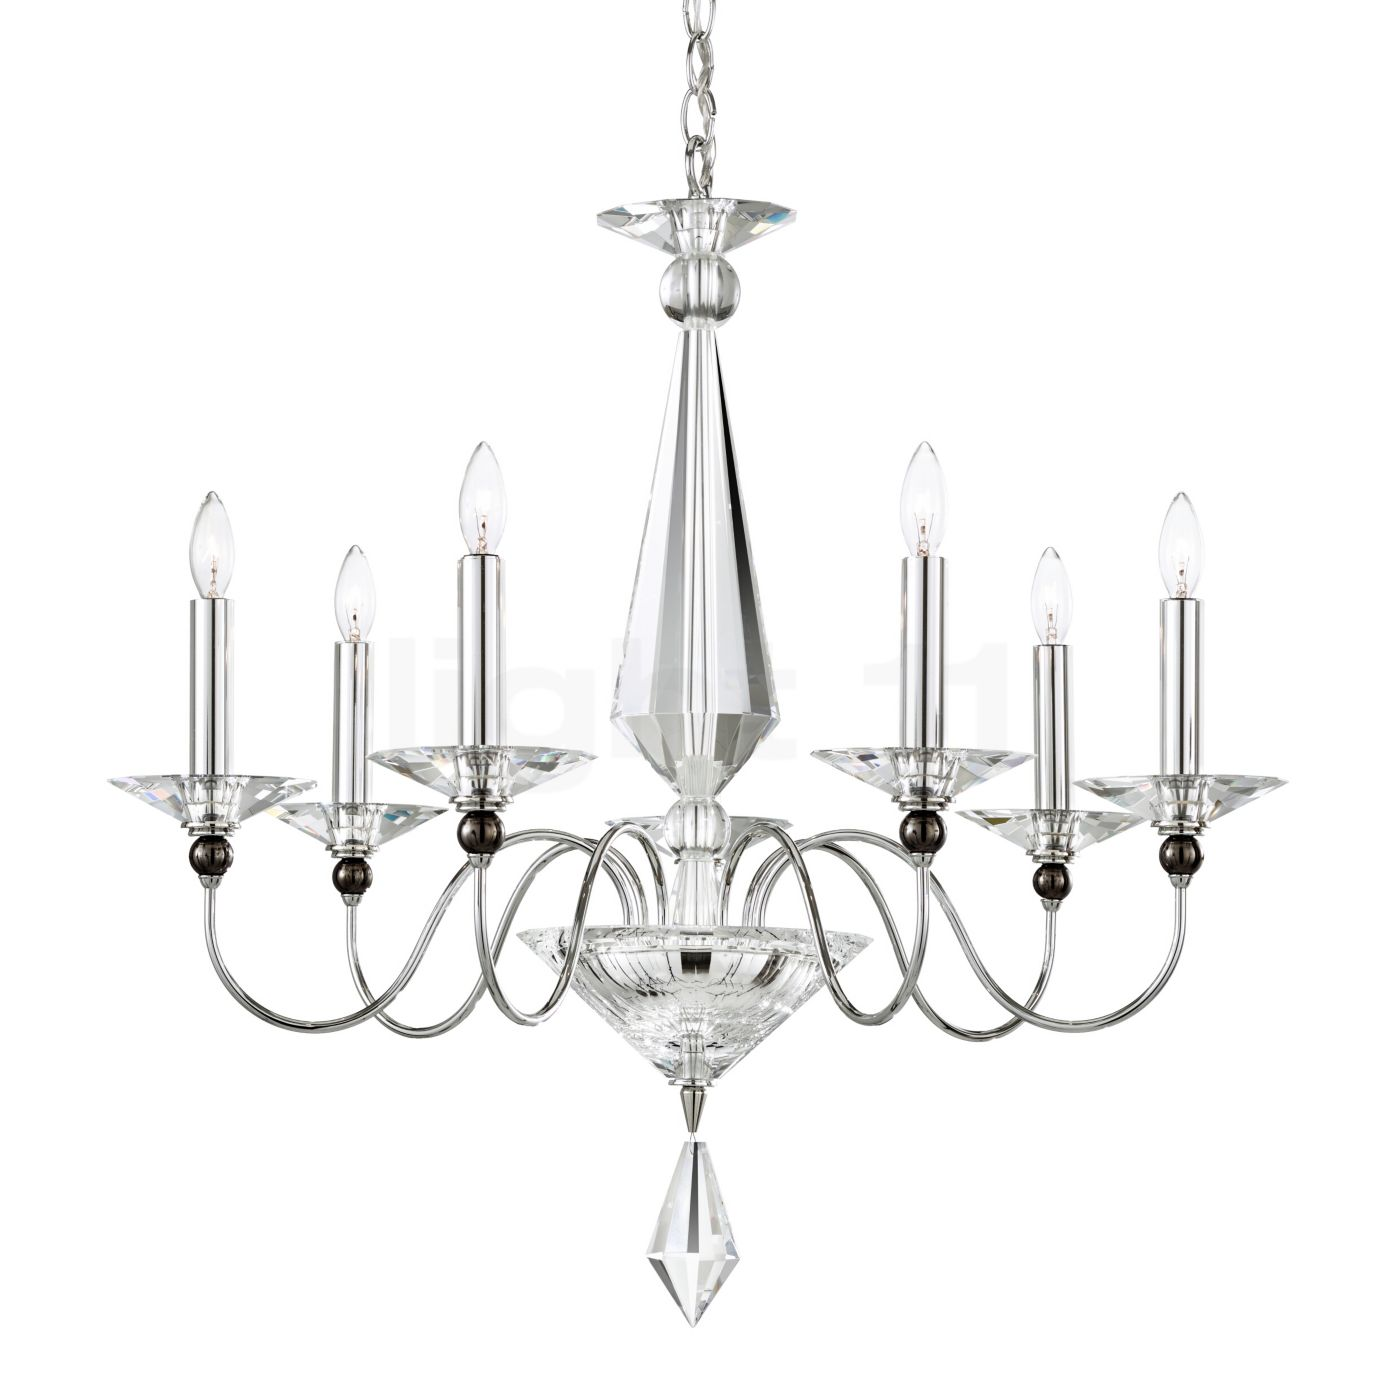 lightingshowplace lighting wide stainless from com refrax collection chandelier light steel schonbek the